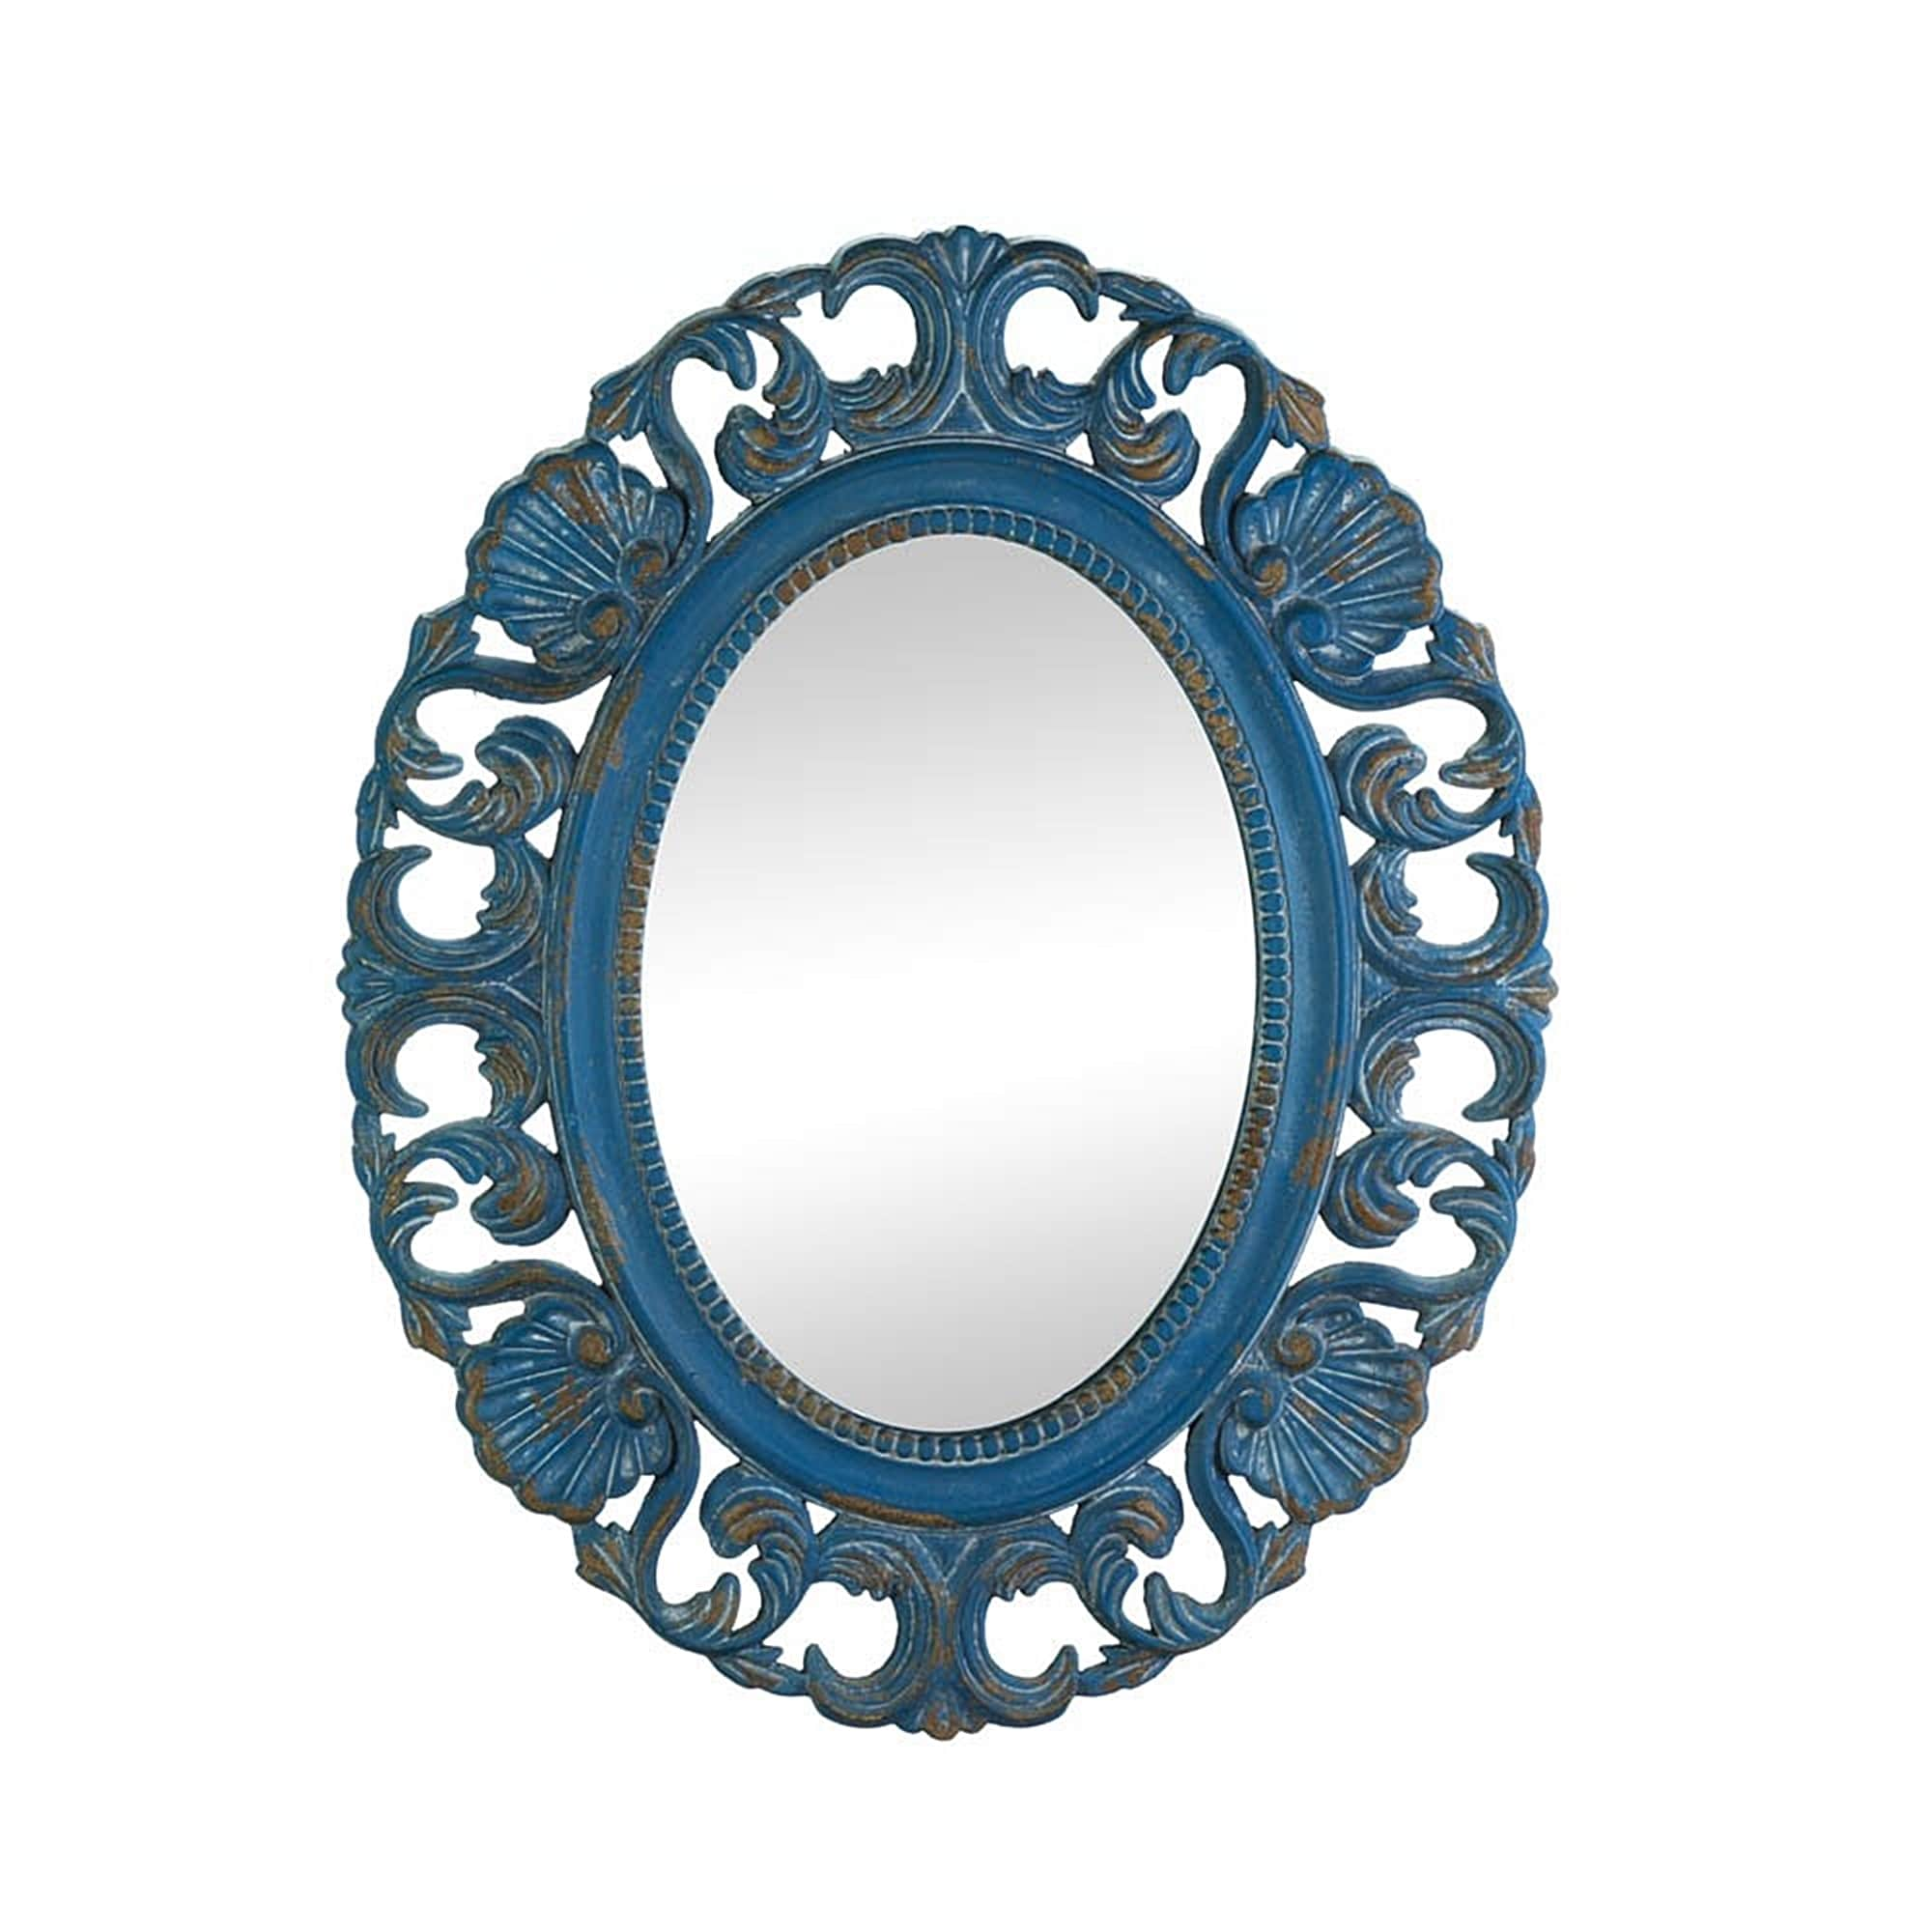 Antique-Style Blue Oval Wall Mirror, Blue/Brown